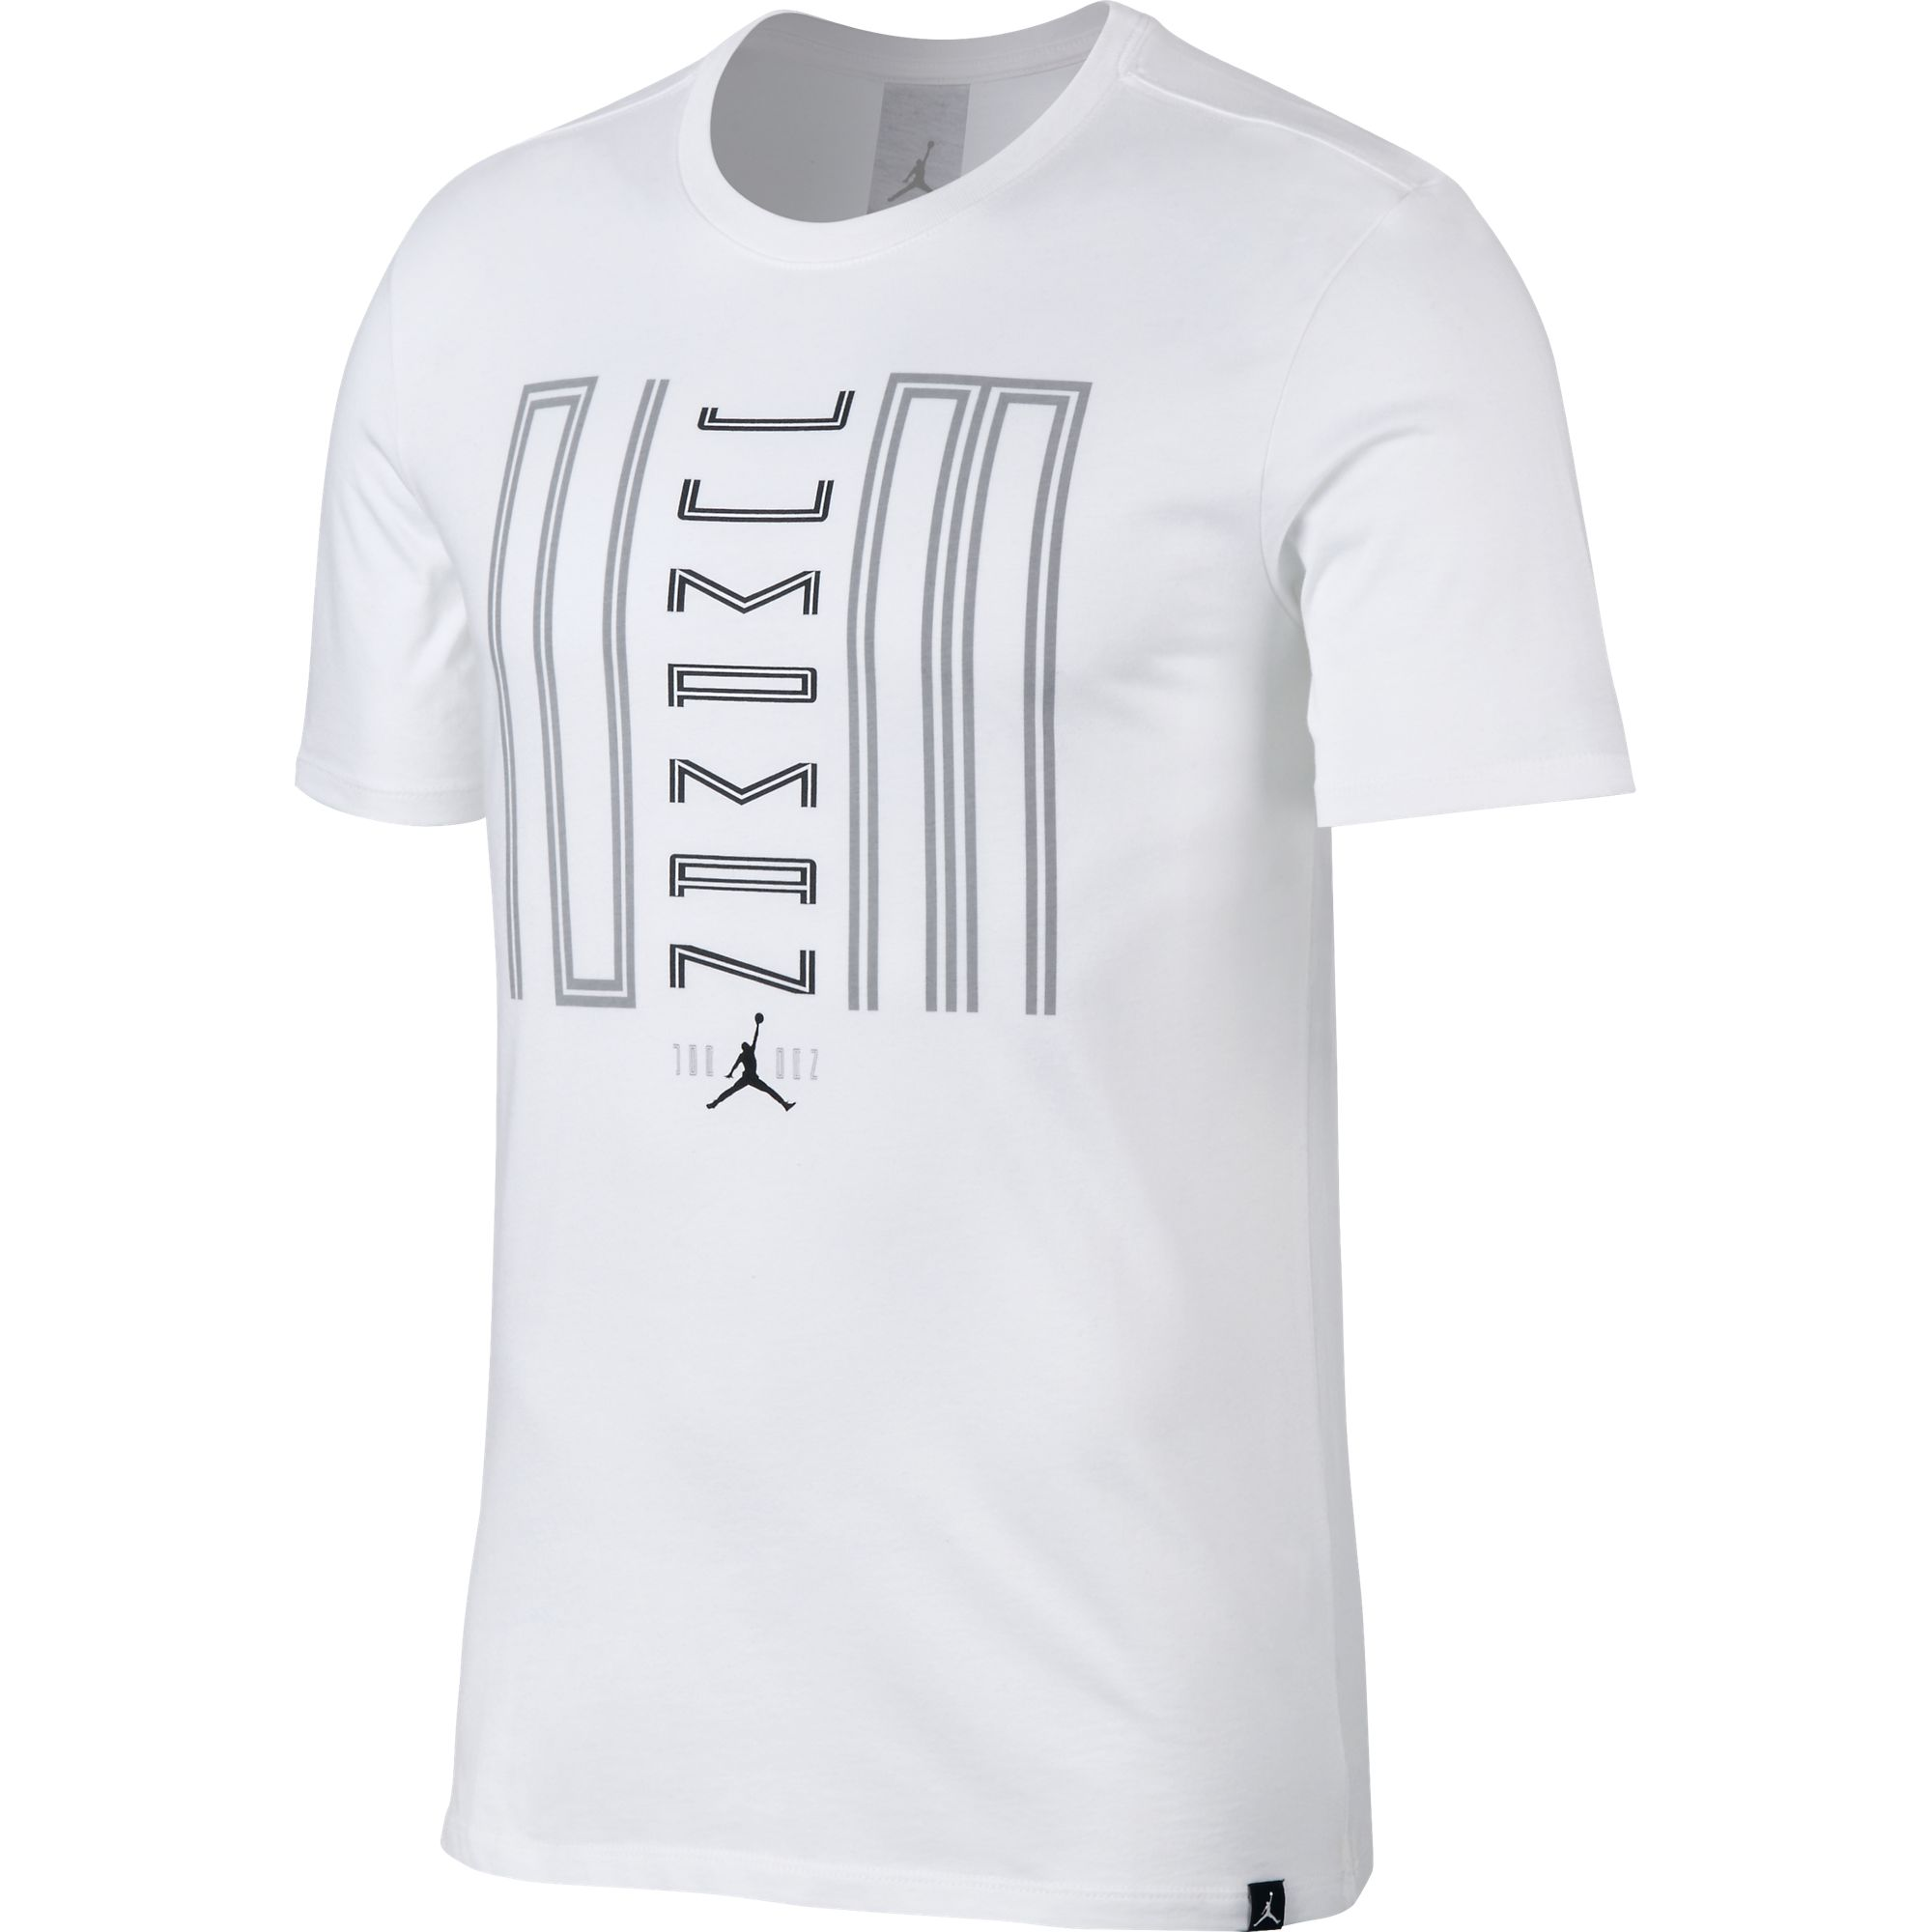 dc047b13aa54 Details about Jordan 11 Jumpman 23 Men s Sportswear Casual T-Shirt White Black  844282-101